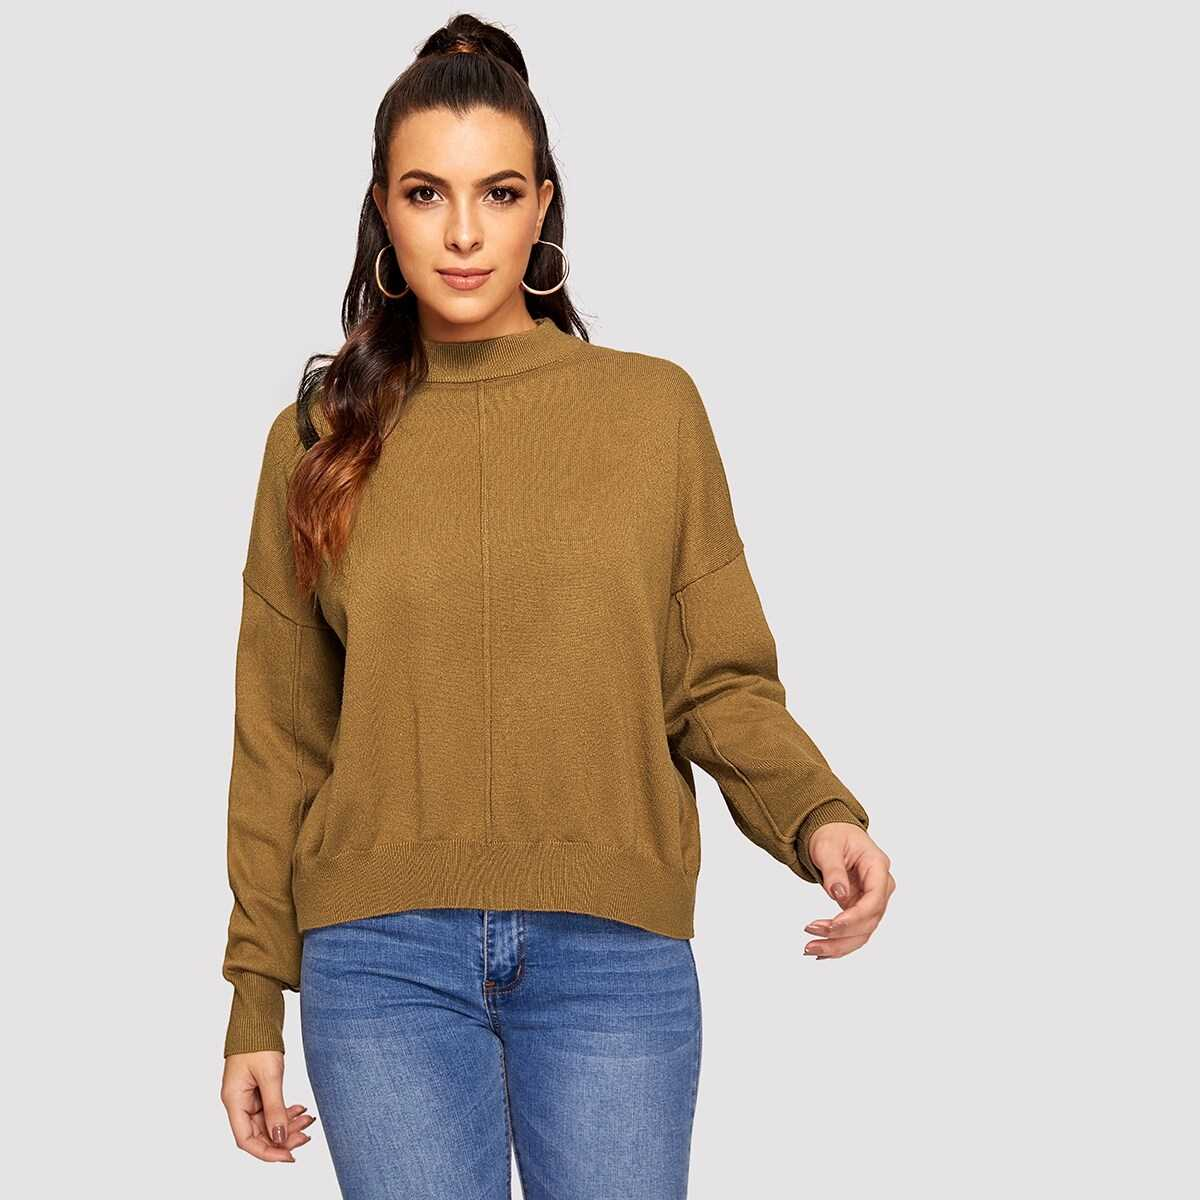 847521509ac8 Mock-neck Drop Shoulder Solid Sweater Shein | GOOFASH SHOP